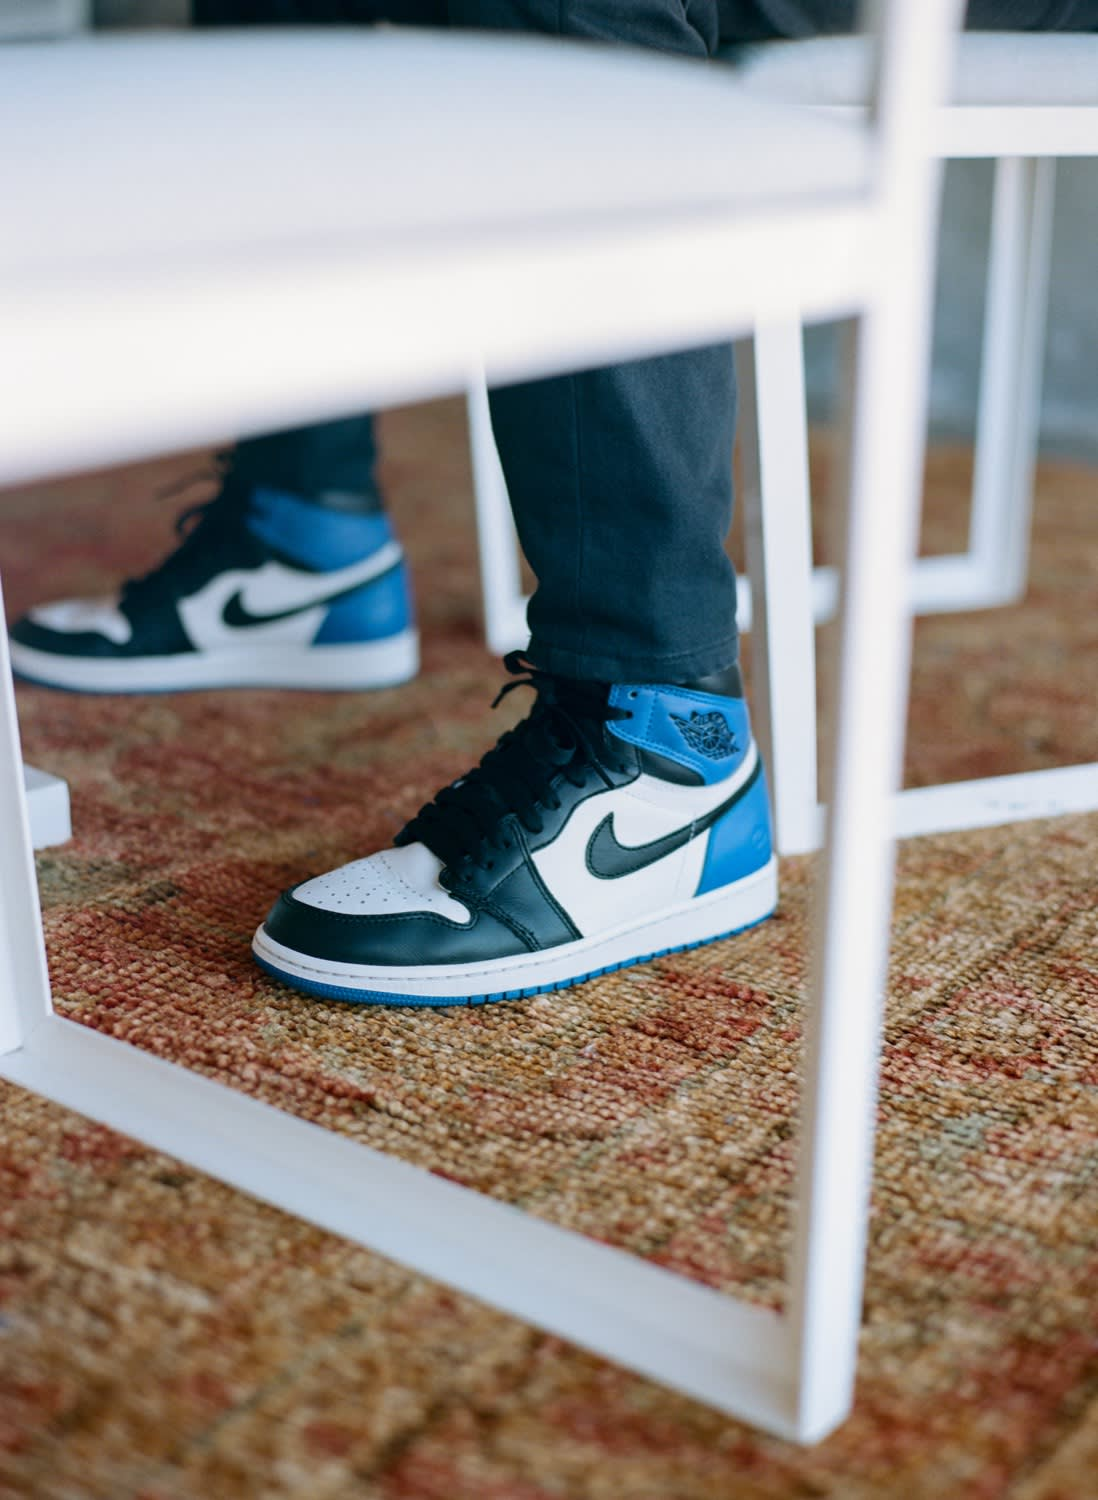 Jason Markk wearing Nike Air Jordan 1 x Fragment Style Code: 716371-040